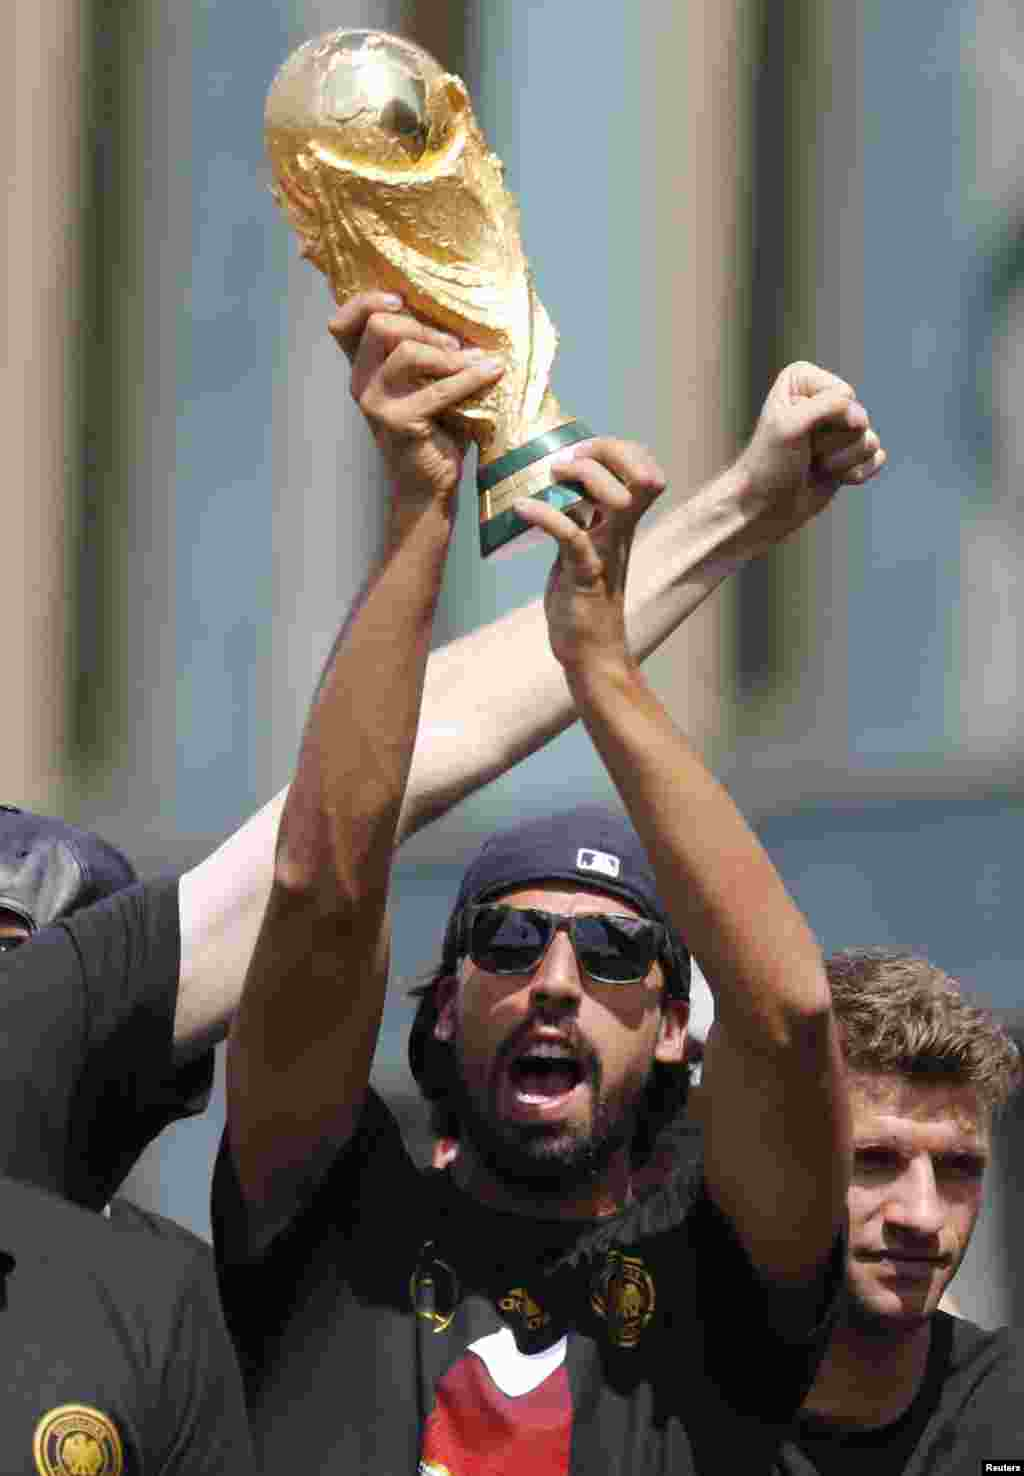 Germany's national soccer team player Sami Khedira lifts up the World Cup trophy on stage during celebrations to mark the team's 2014 Brazil World Cup victory, at the Fan Mile public viewing zone in Berlin, July 15, 2014.